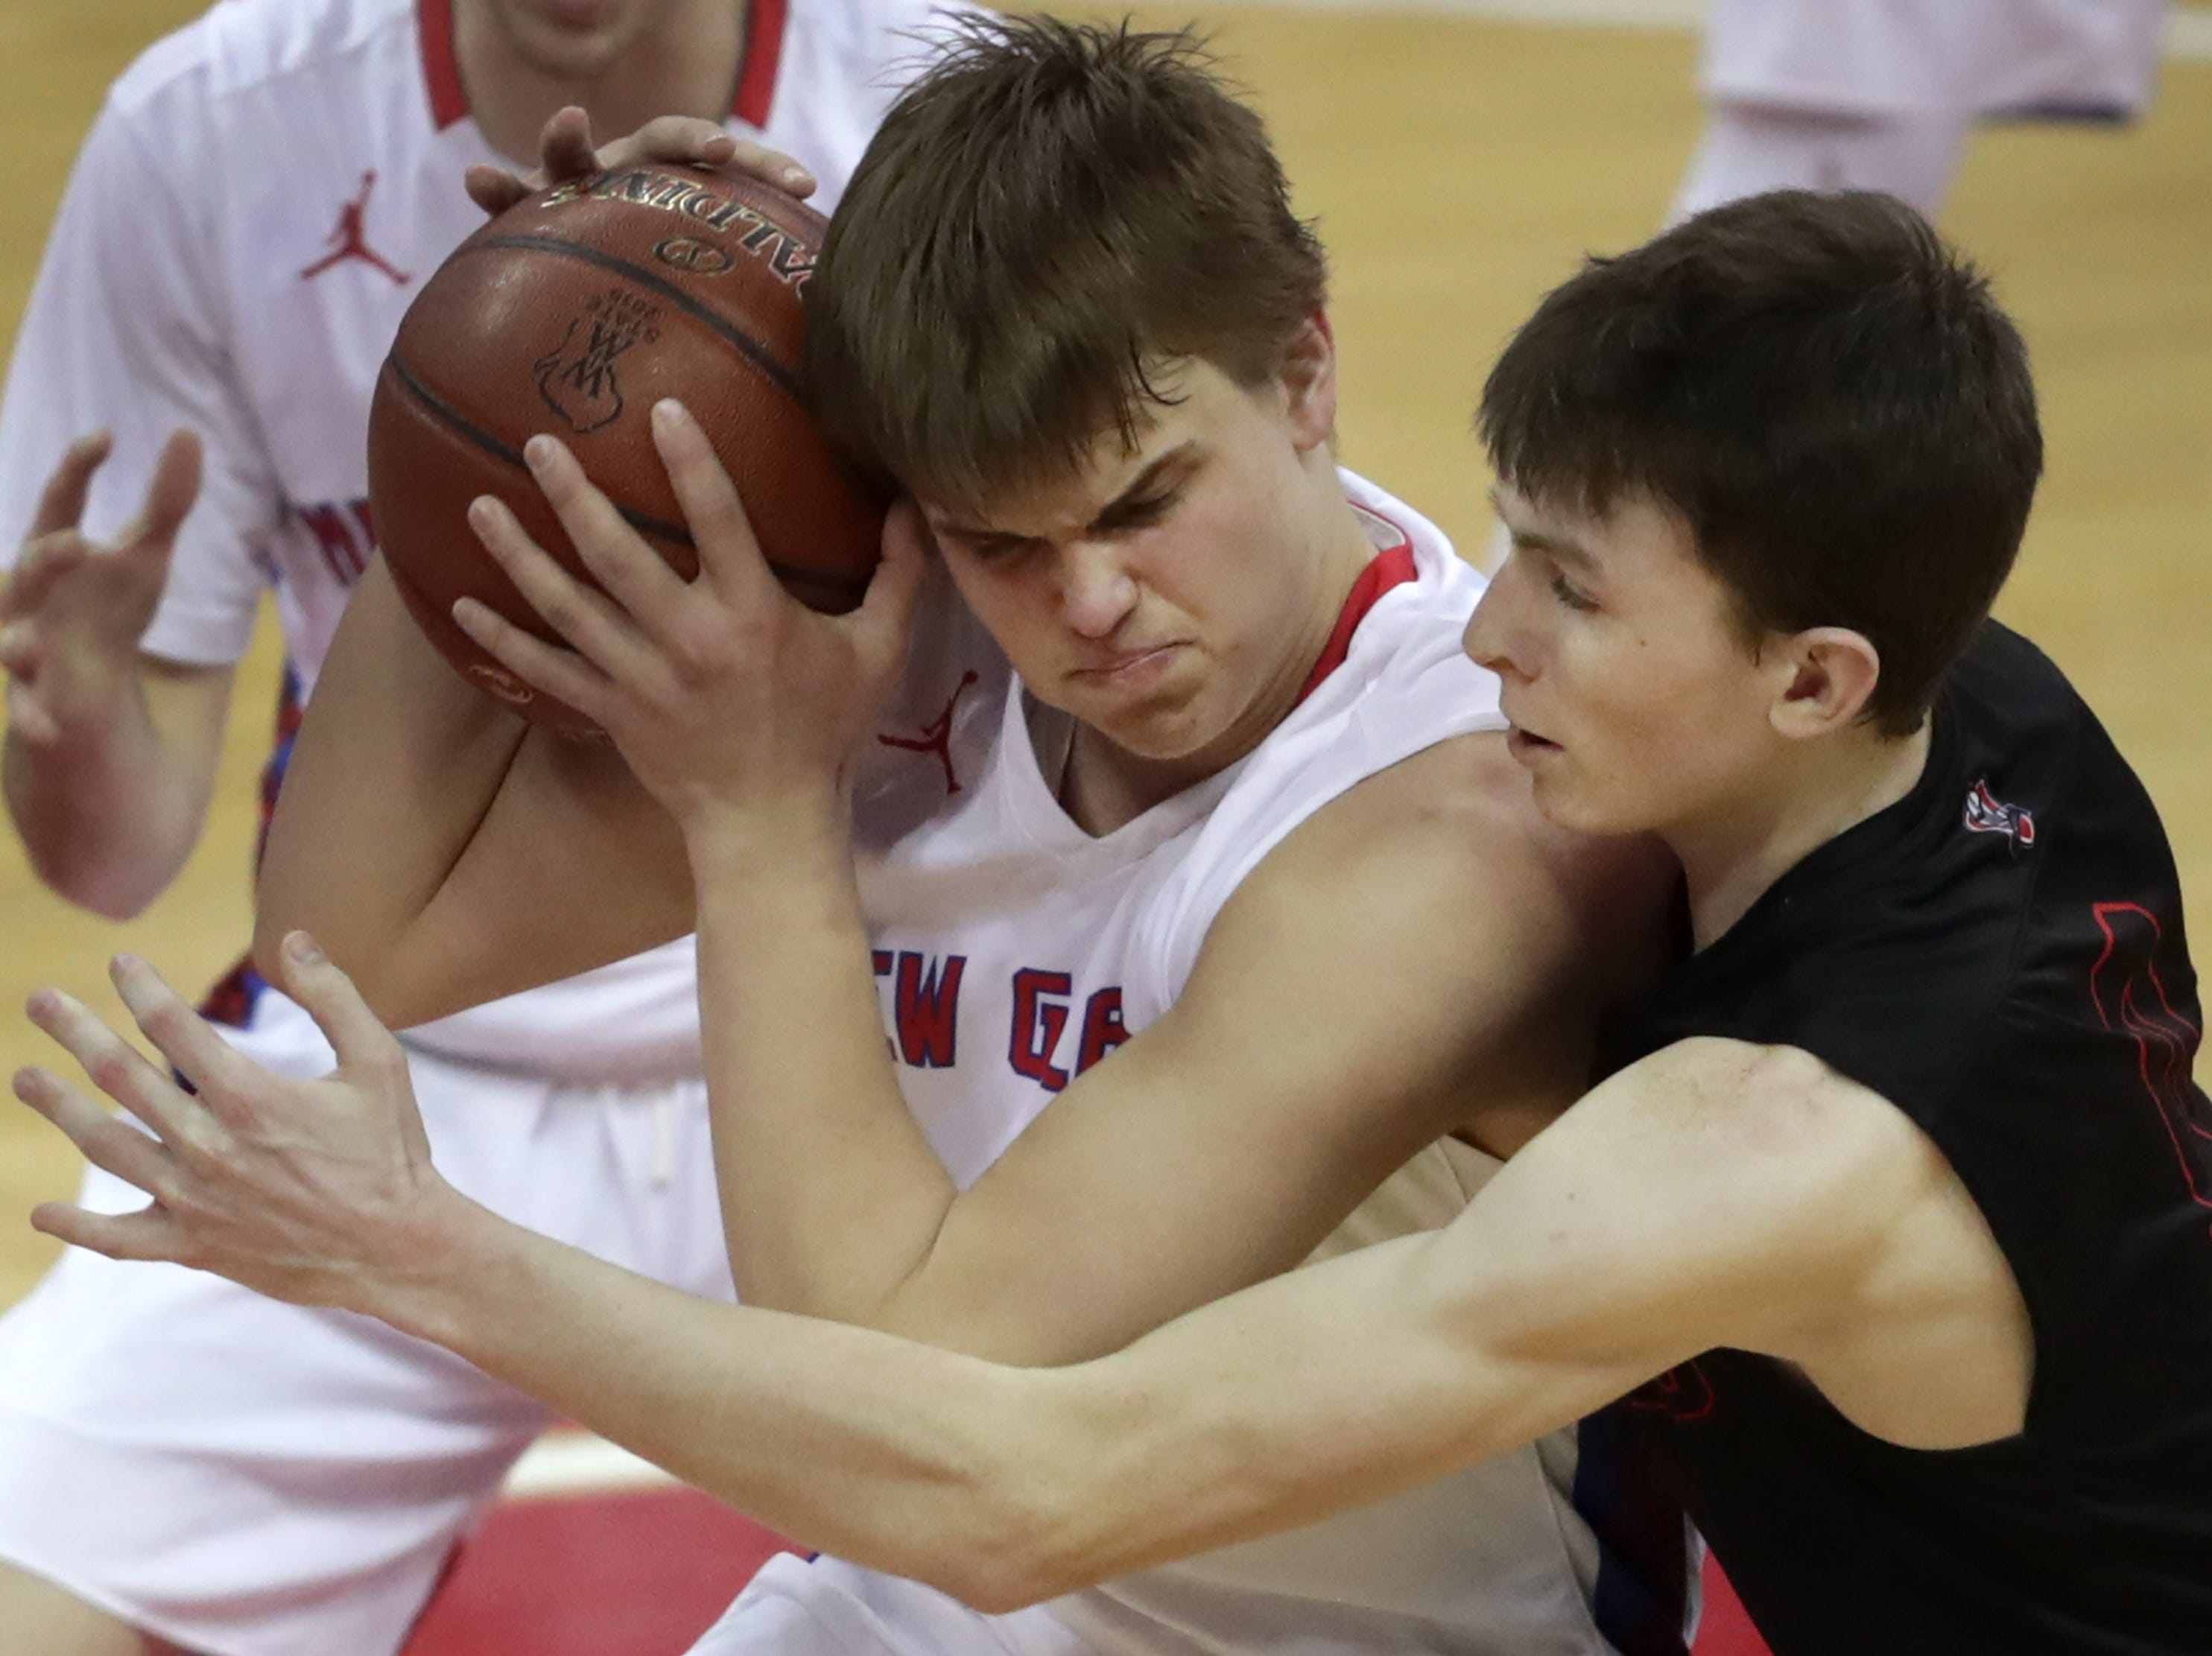 Lourdes Academy's #0 Hayden Jones against New Glarus High School's #1 Mason Martinson during their WIAA Division 4 boys basketball state championship game on Saturday, March 15, 2019, at the Kohl Center in Madison, Wis.New Glasrus defeated Lourdes 67 to 62.Wm. Glasheen/USA TODAY NETWORK-Wisconsin.